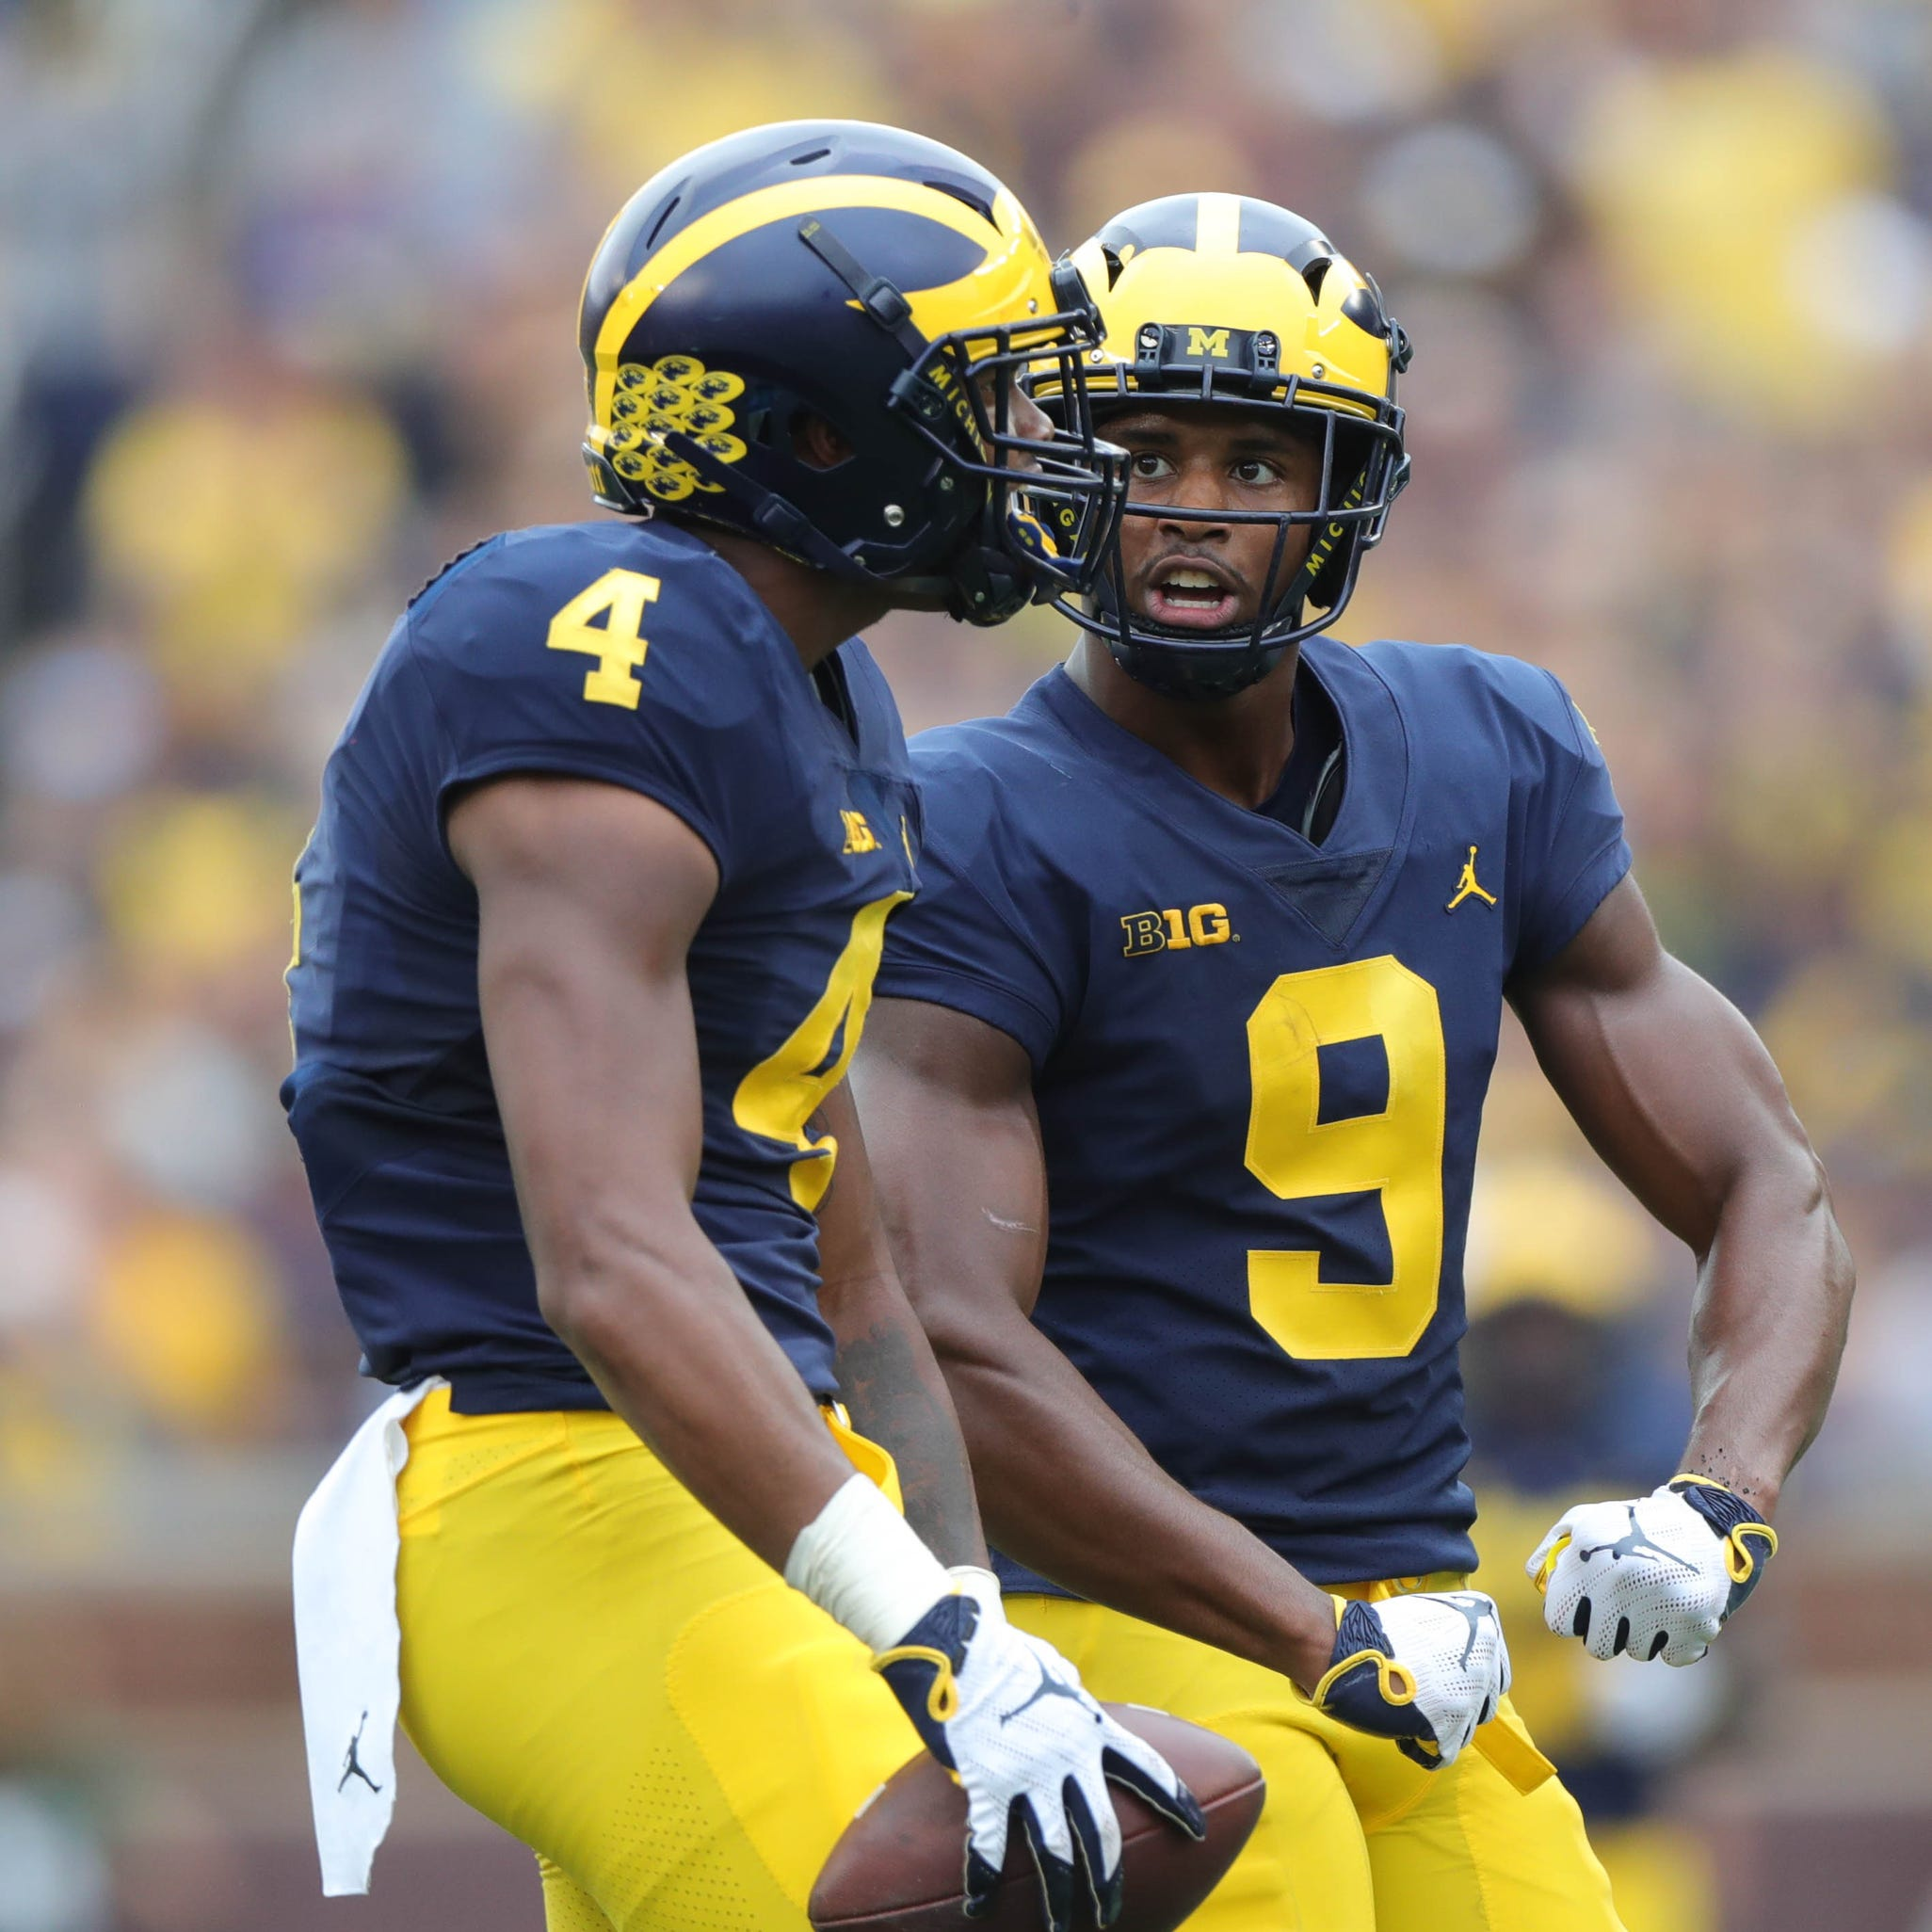 Michigan football: The wide receivers should carry this offense